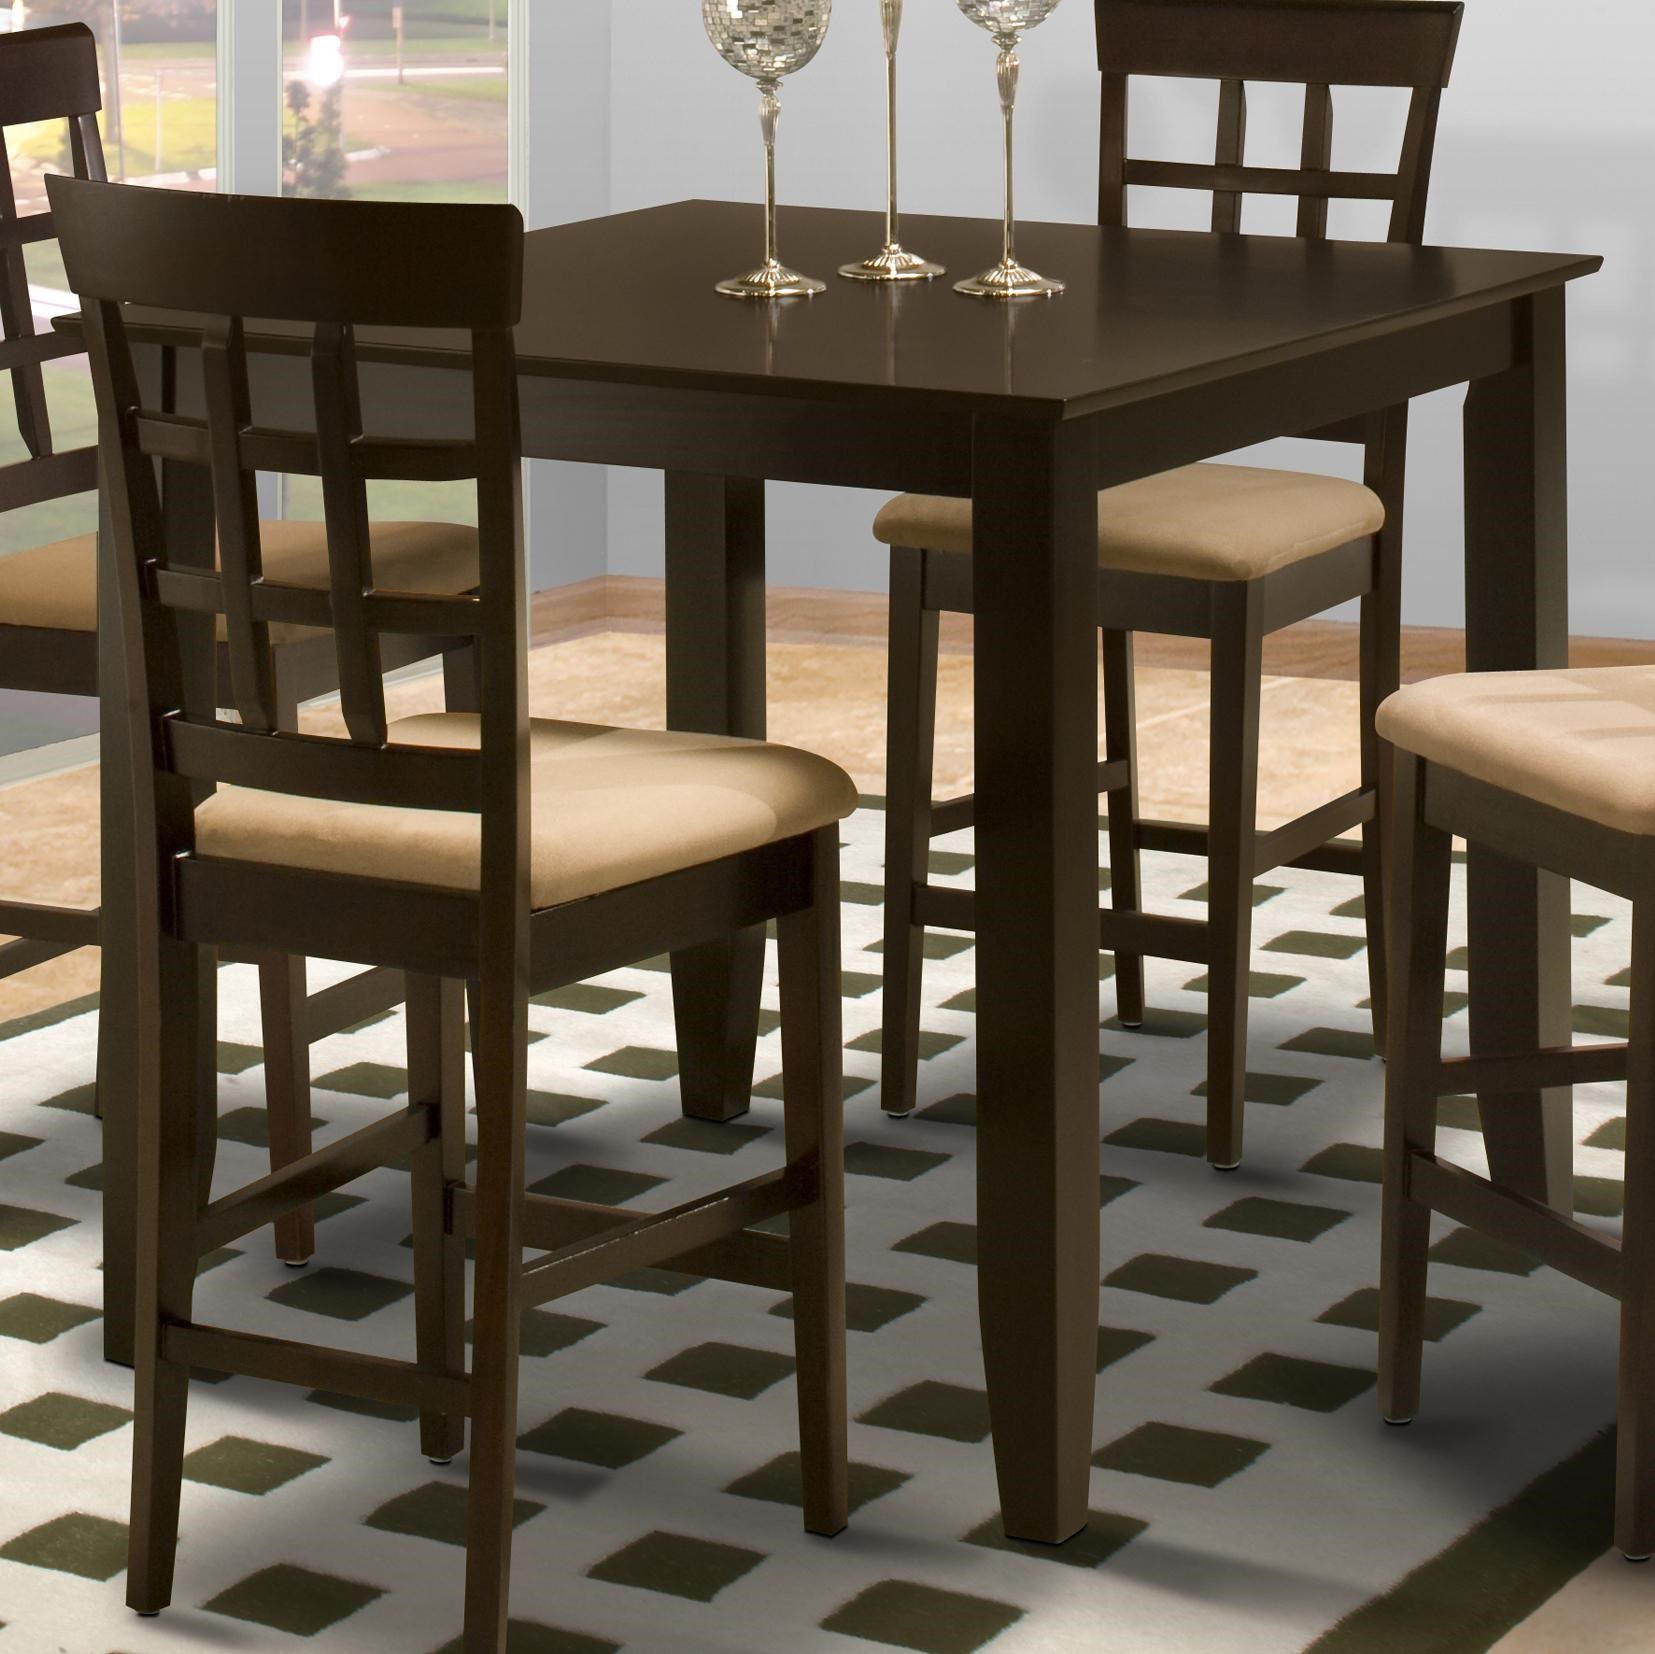 Buy Bar amp Pub Table Sets Online at Overstockcom  Our